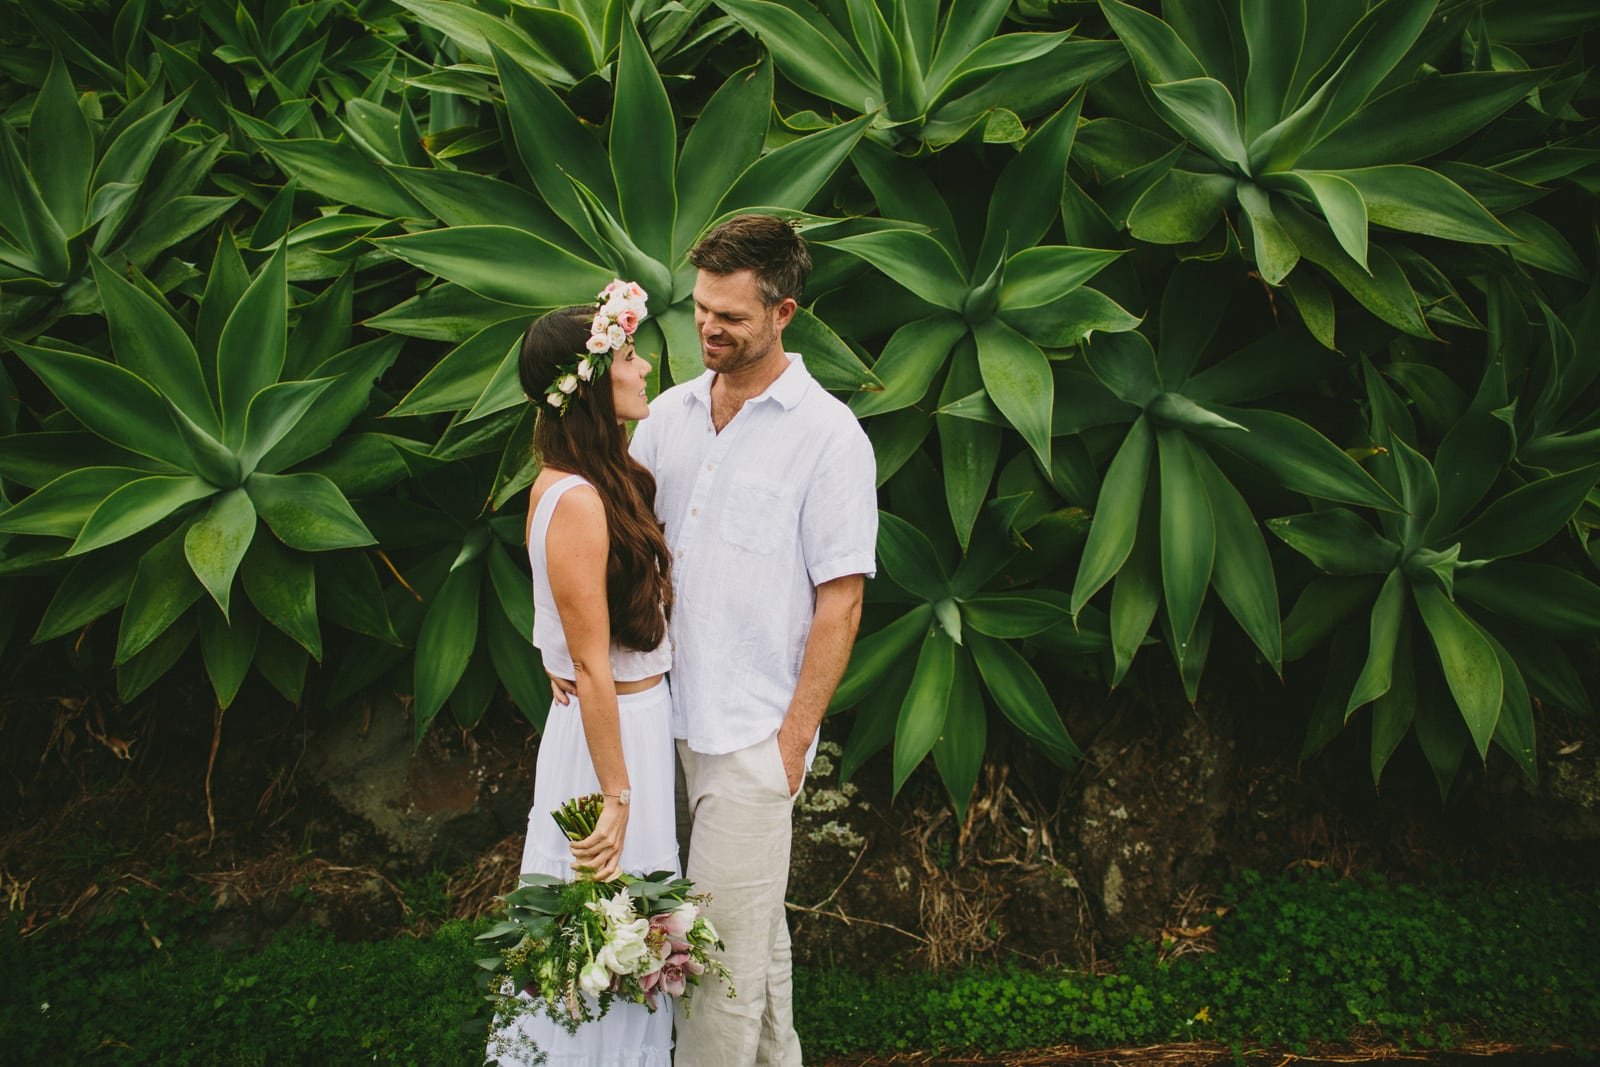 Maui_Wedding_Wailea_Kapalua_Hawaii_Photographer_024